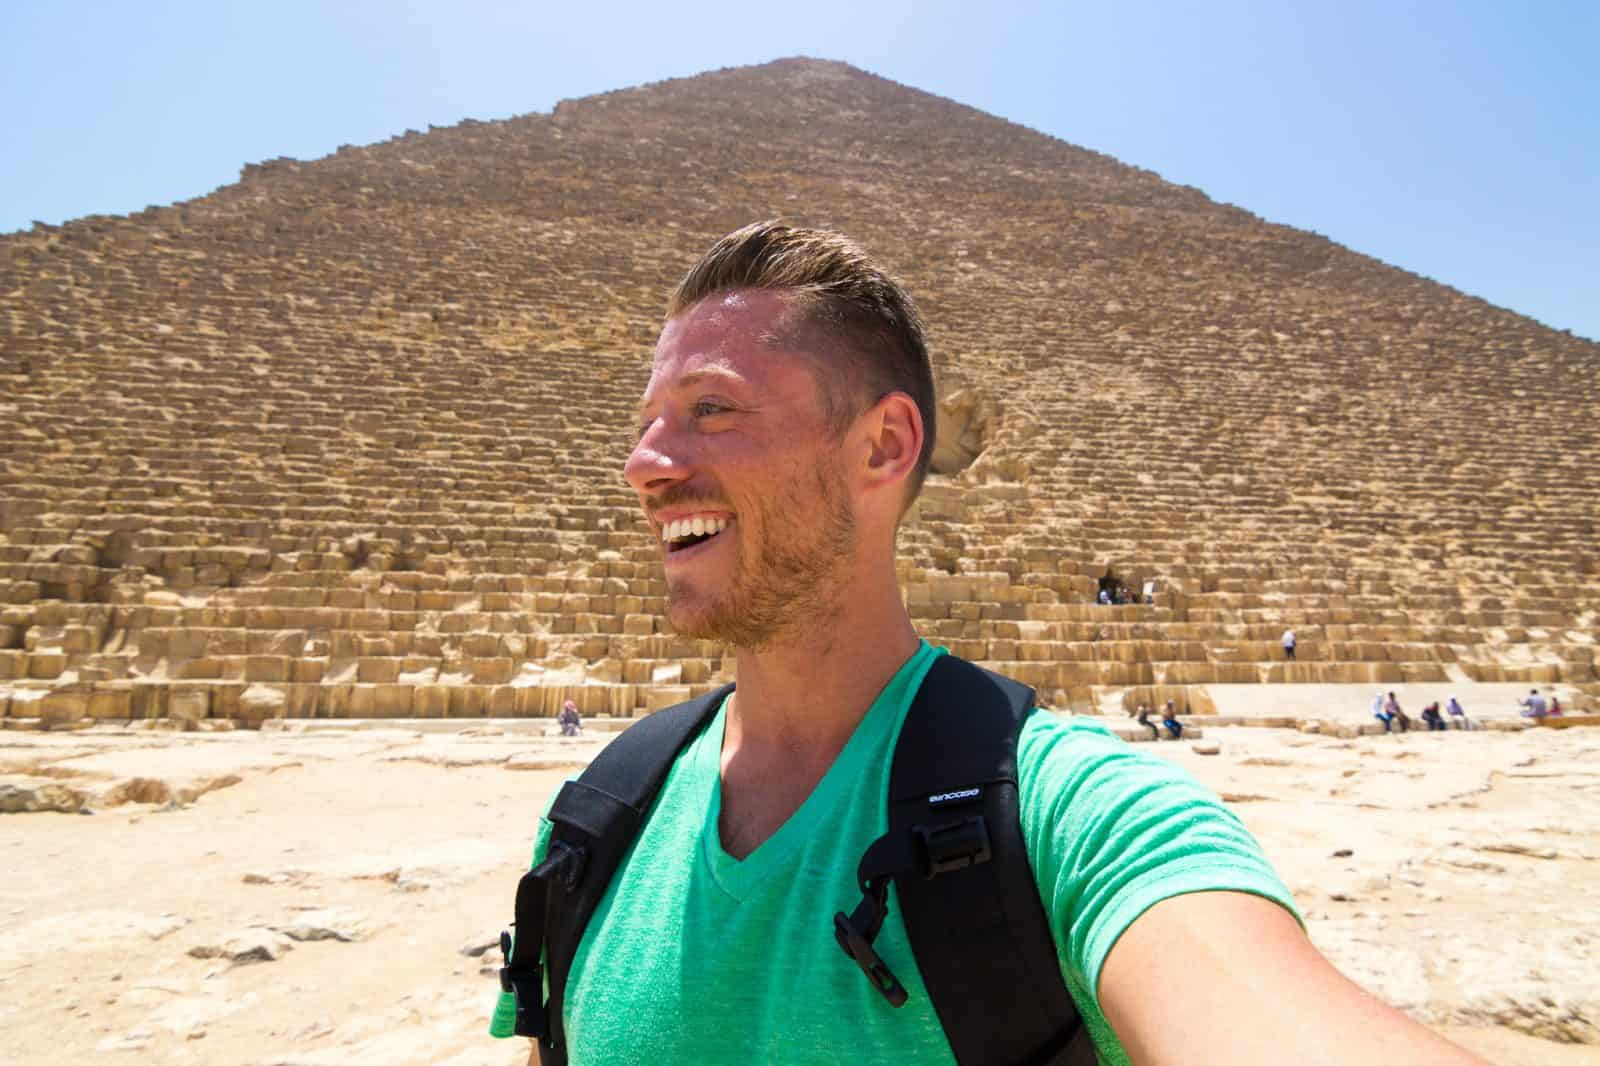 Selfie at the ancient Pyramids of Giza!